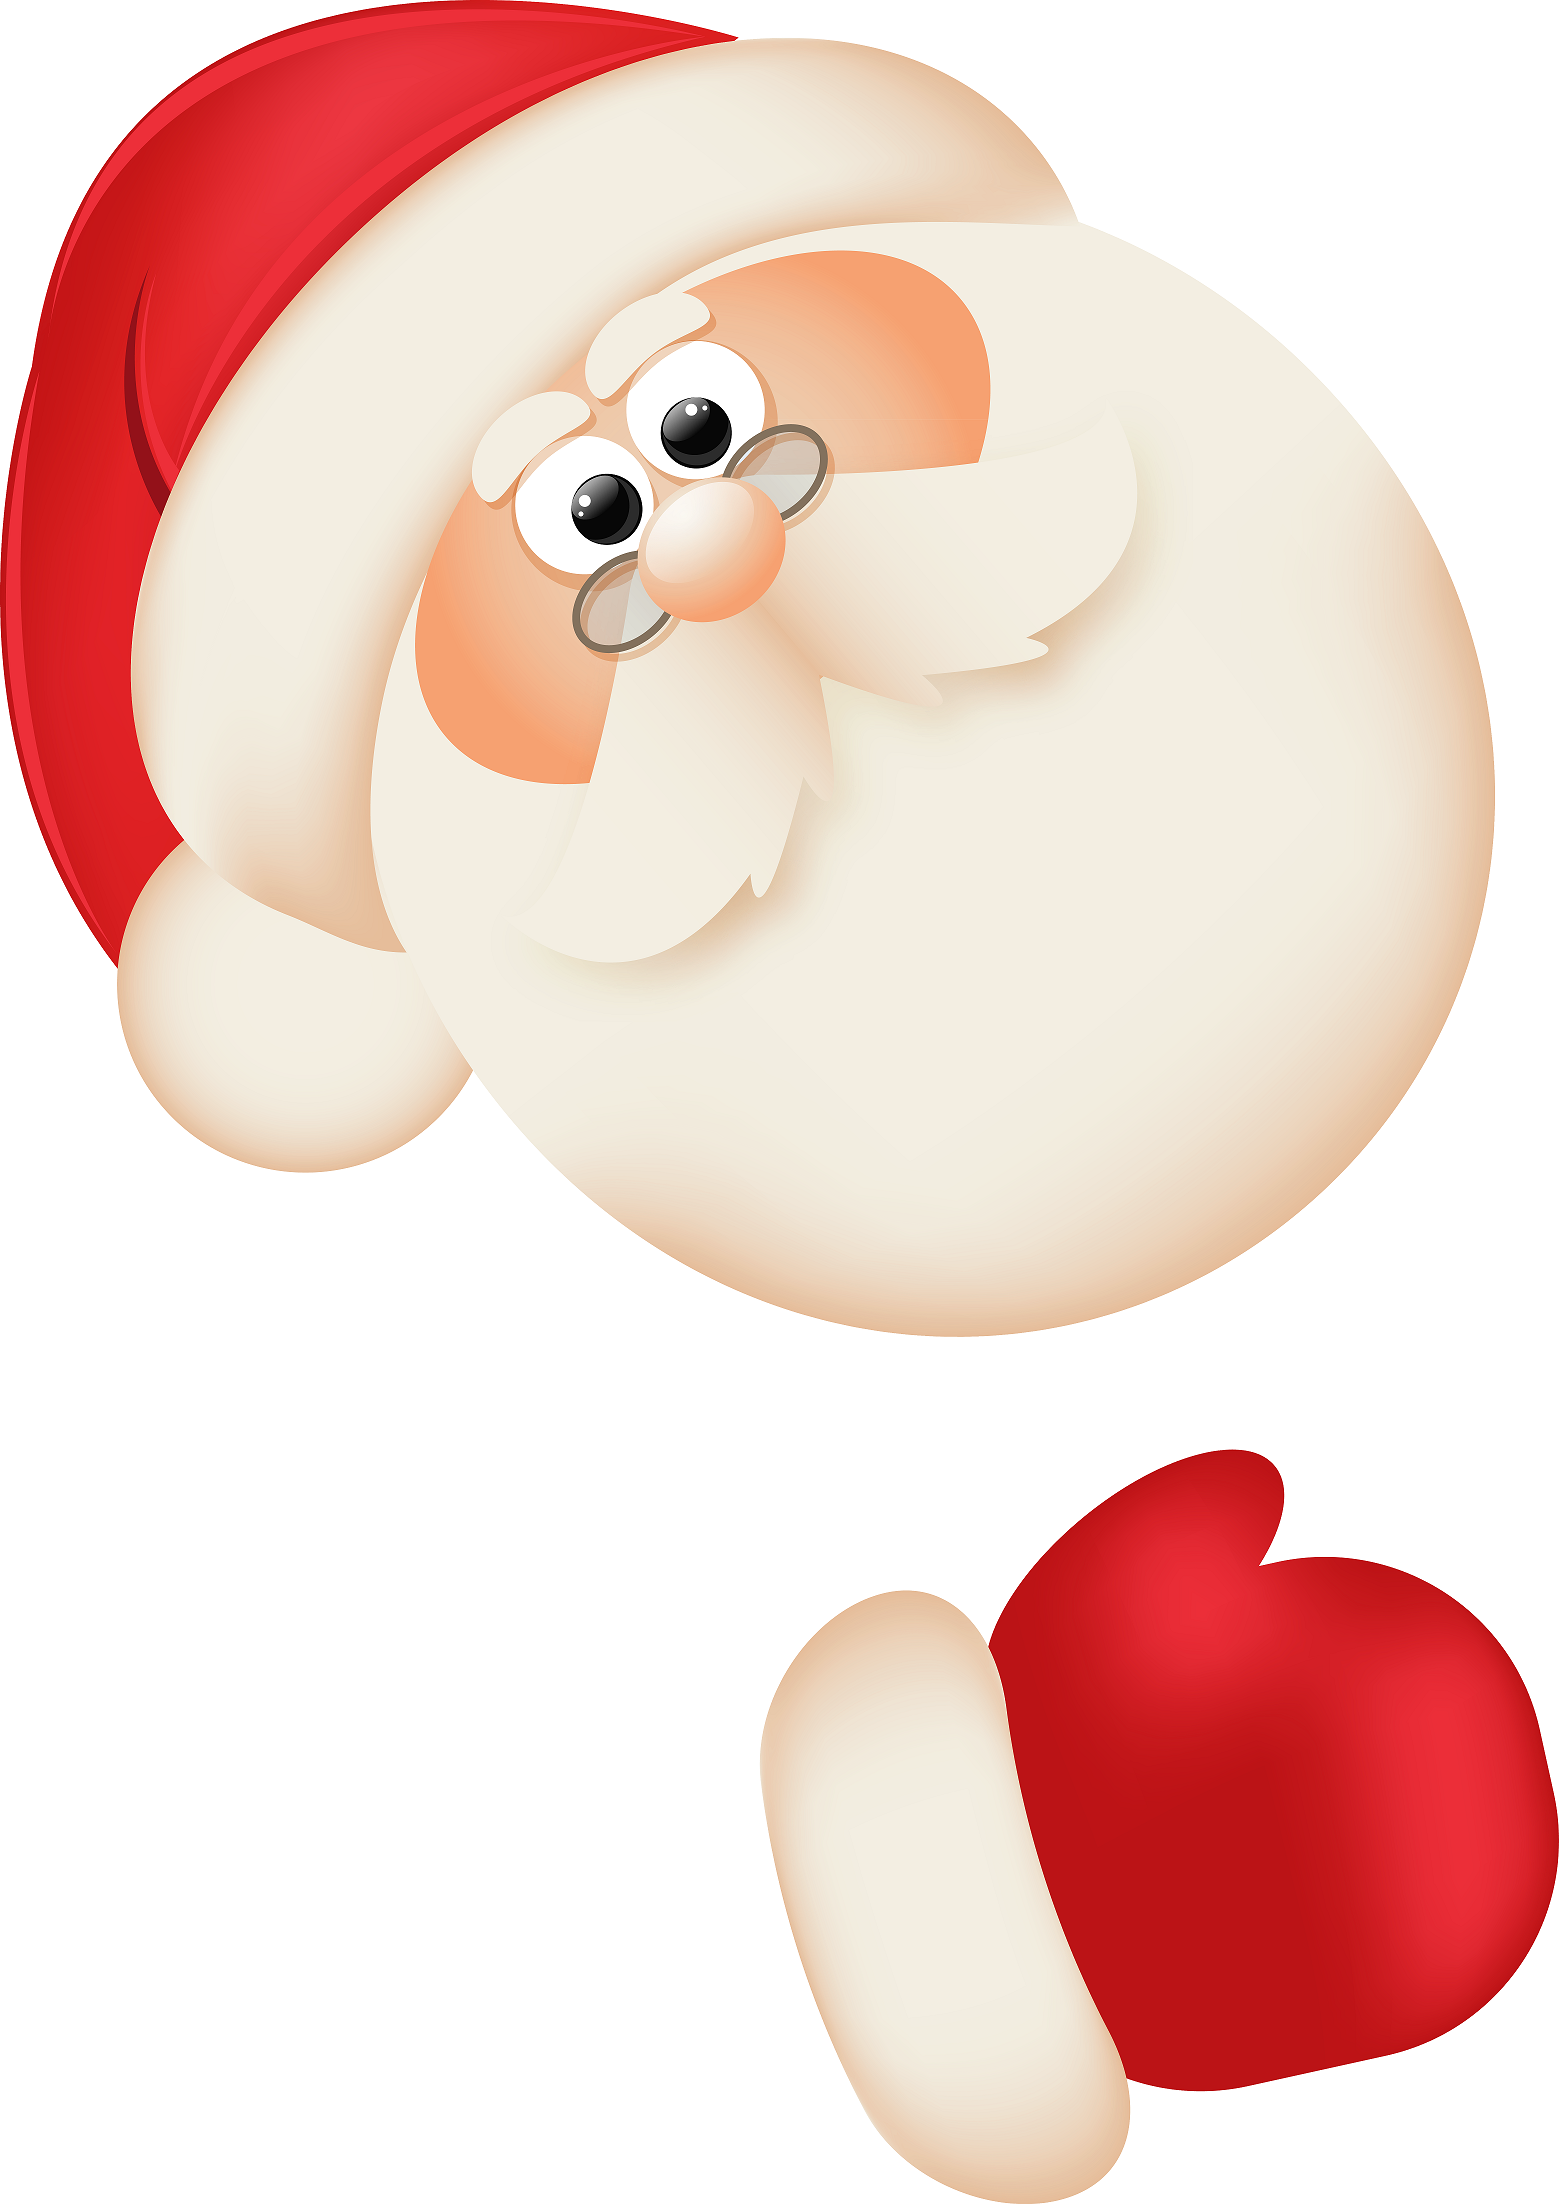 1559x2204 Santa Claus Clip Art Clip Art Holiday Scrapbook, Cards, Images